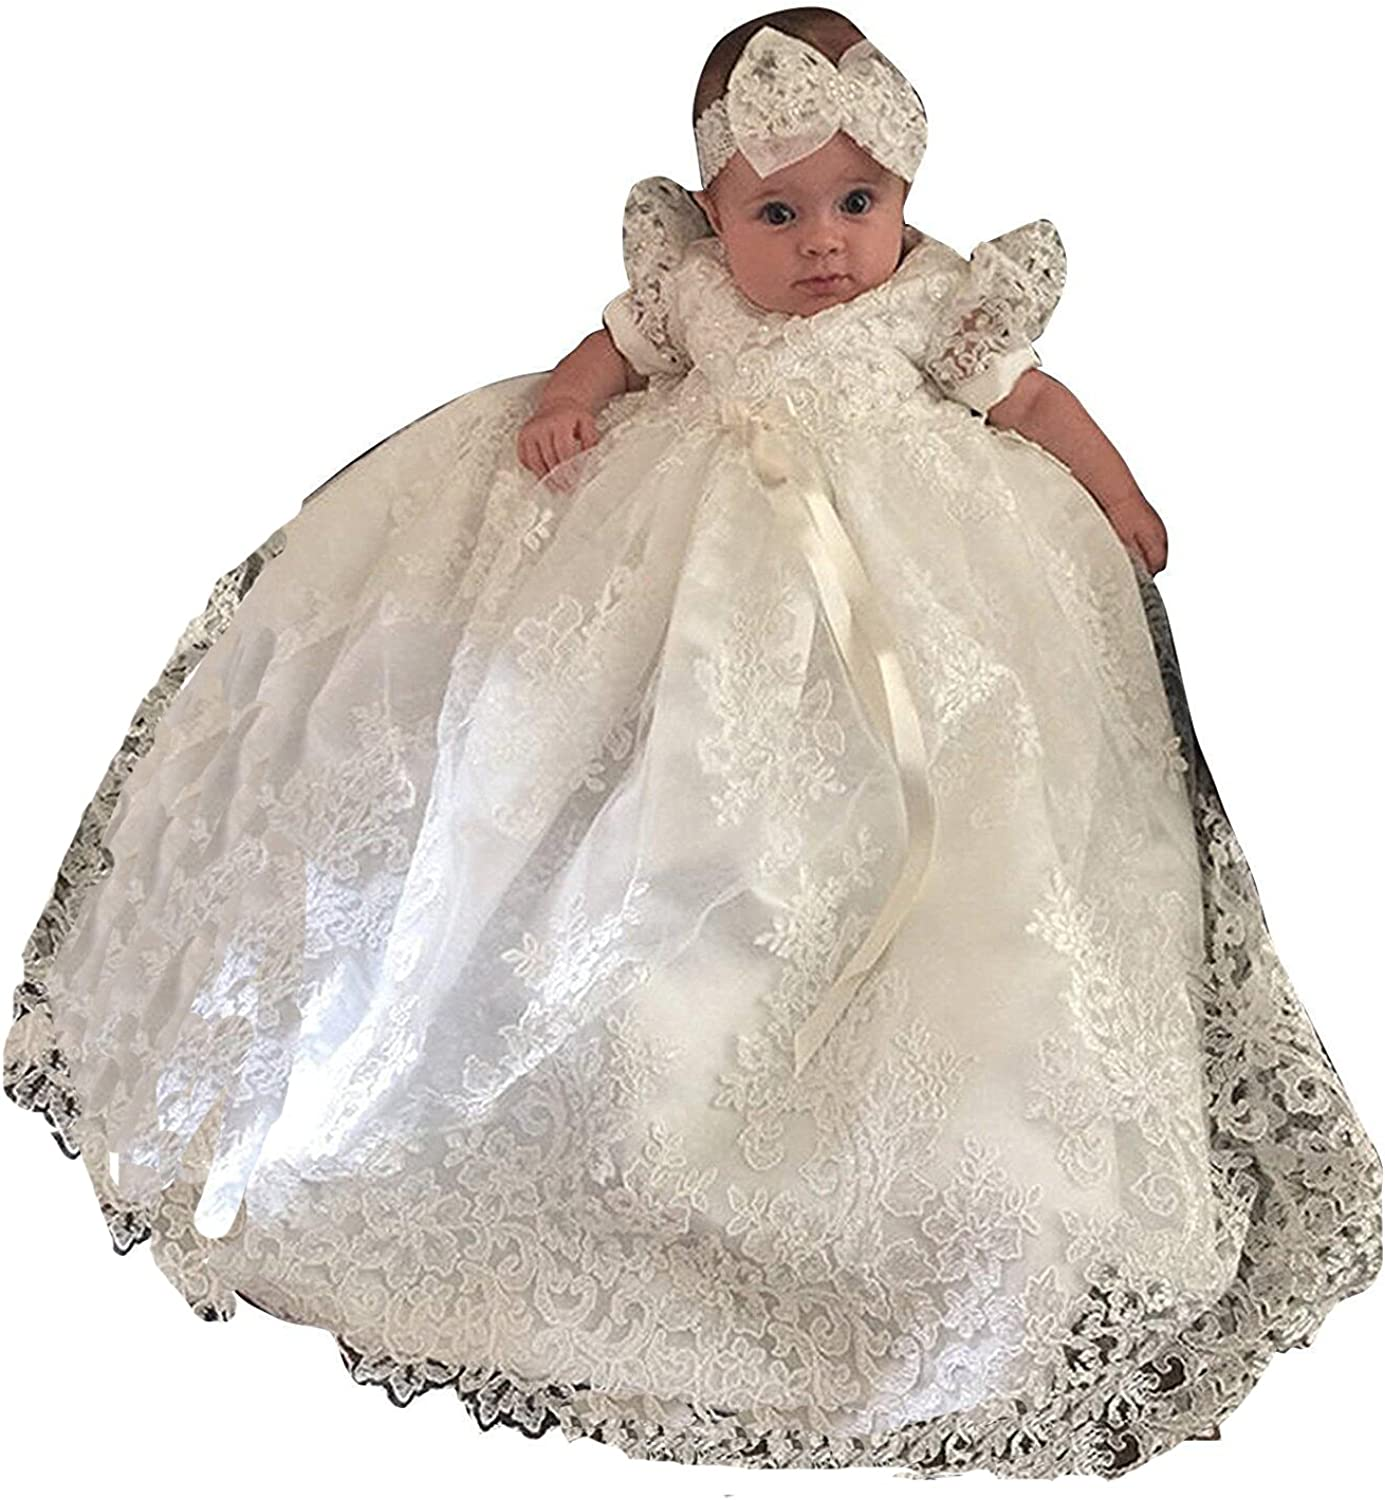 Newdeve Baby-Girls White Lace Infant Toddler Christening Gowns Long